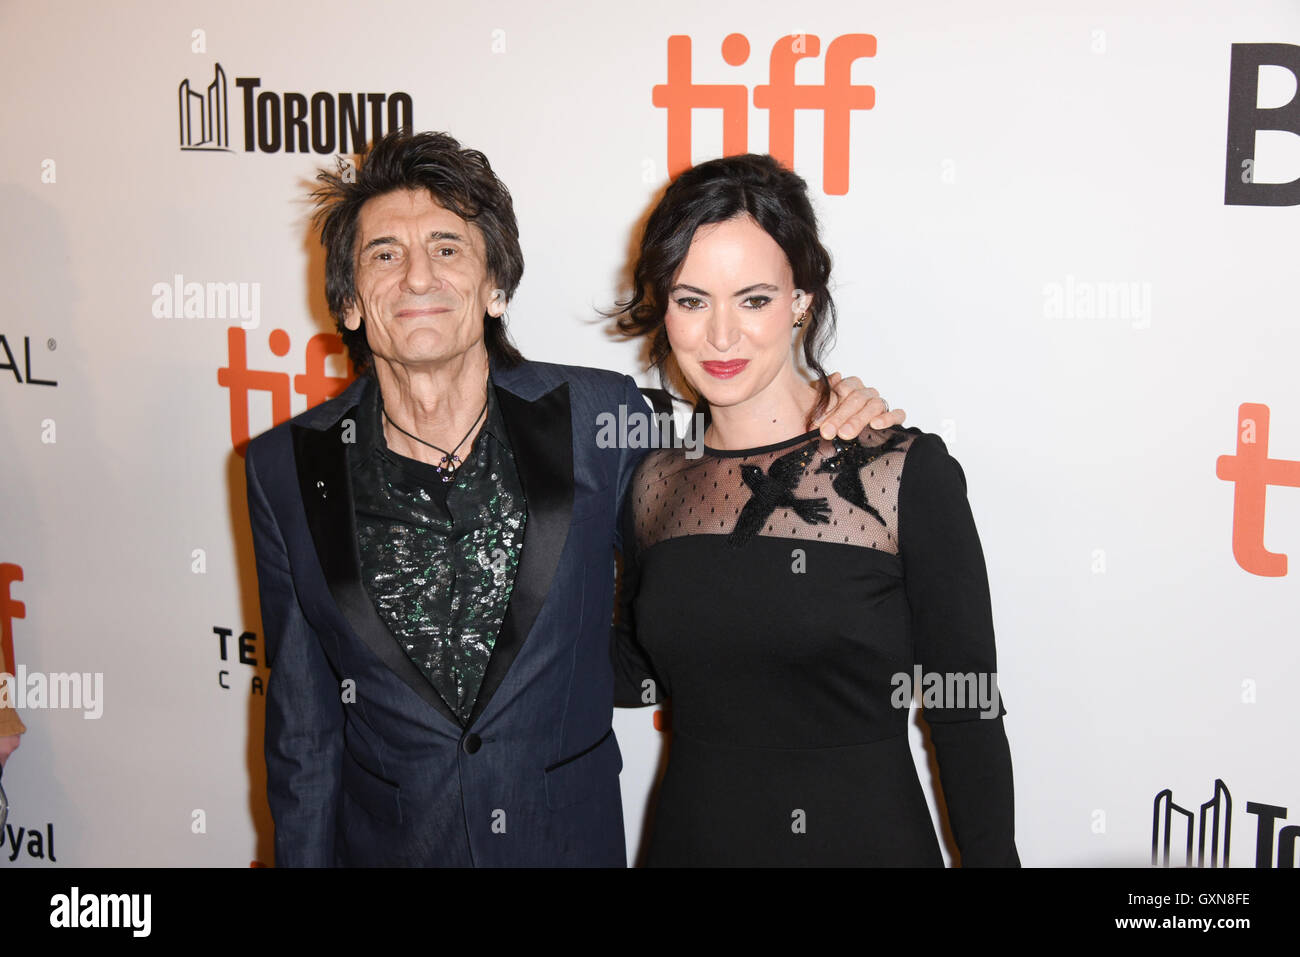 Toronto, Ontario, Canada. 16th Sep, 2016. The Rollings Stones guitarist RONNIE WOOD and wife SALLY HUMPHREYS attend - Stock Image